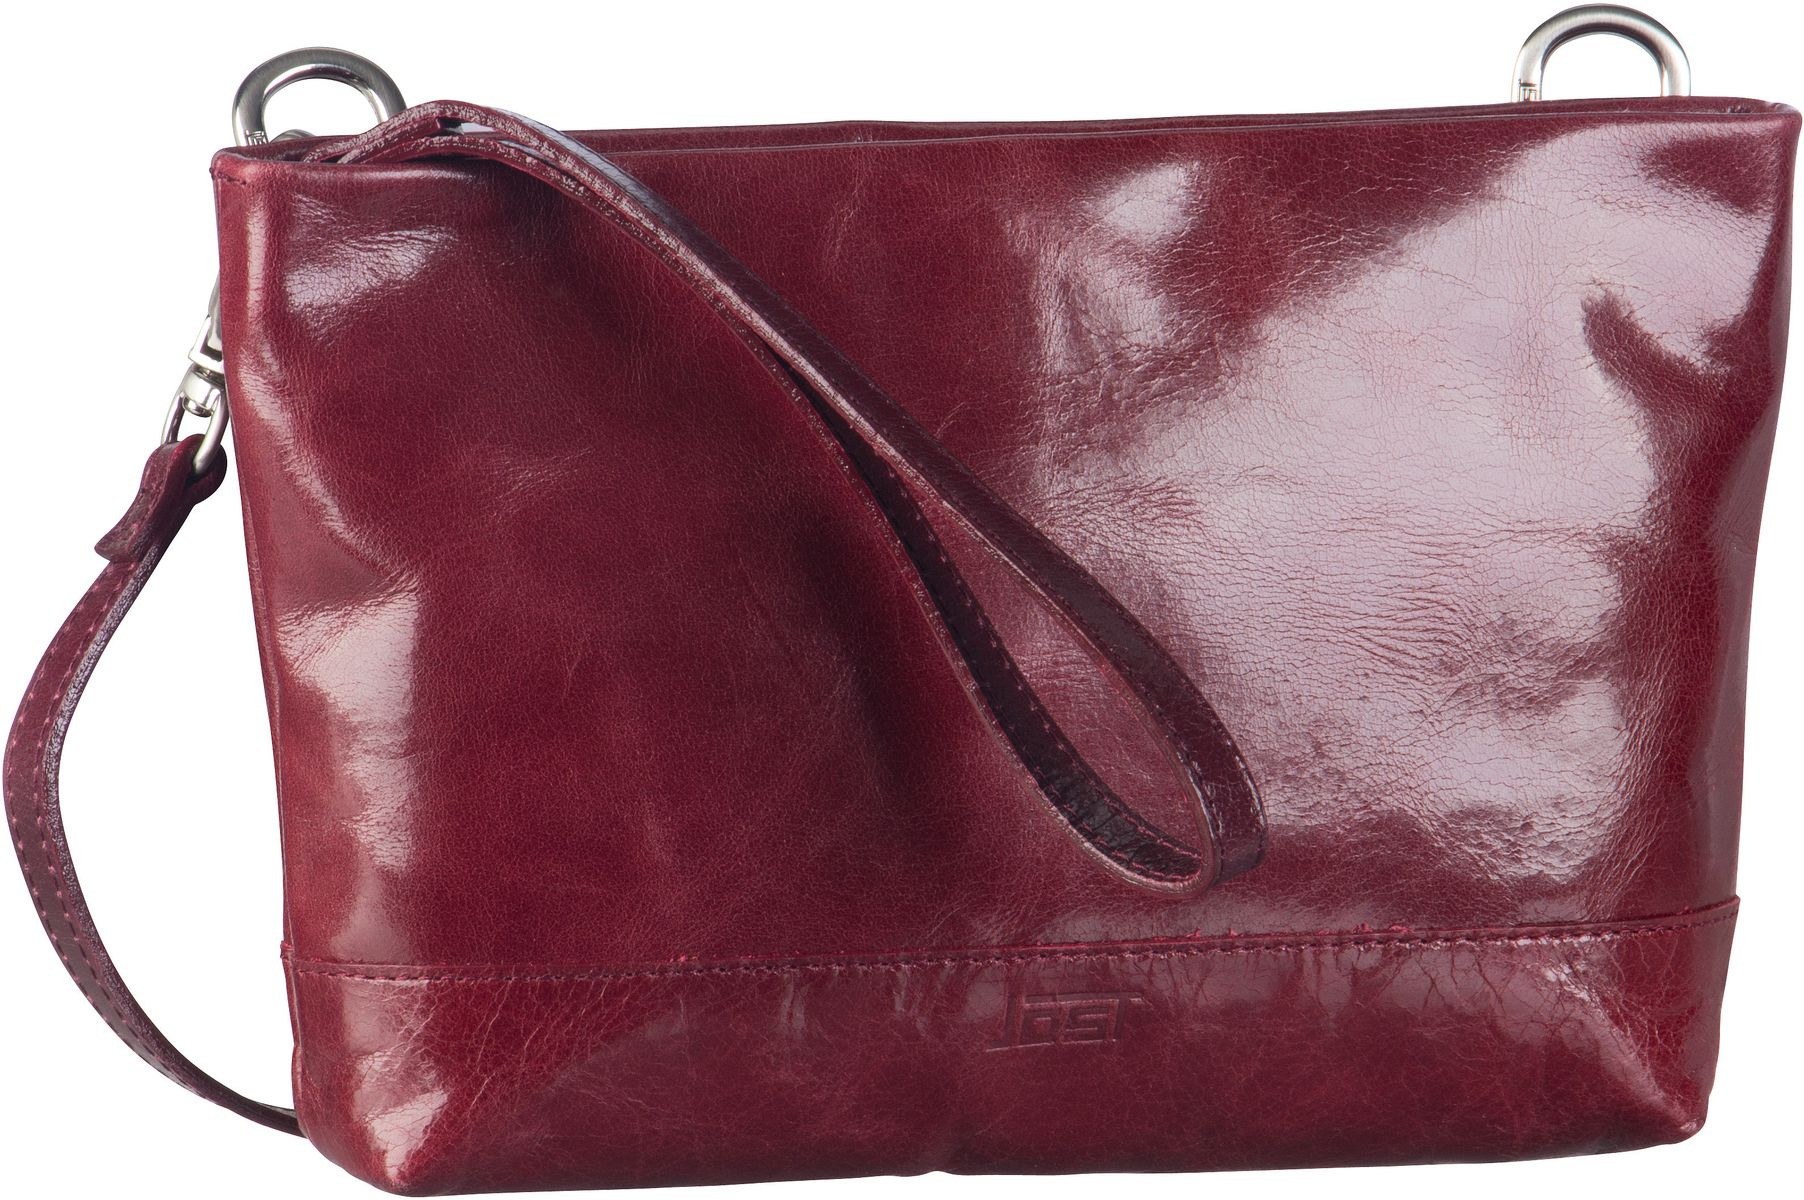 Umhängetasche Boda 6616 Belt/Shoulder Bag Bordeaux